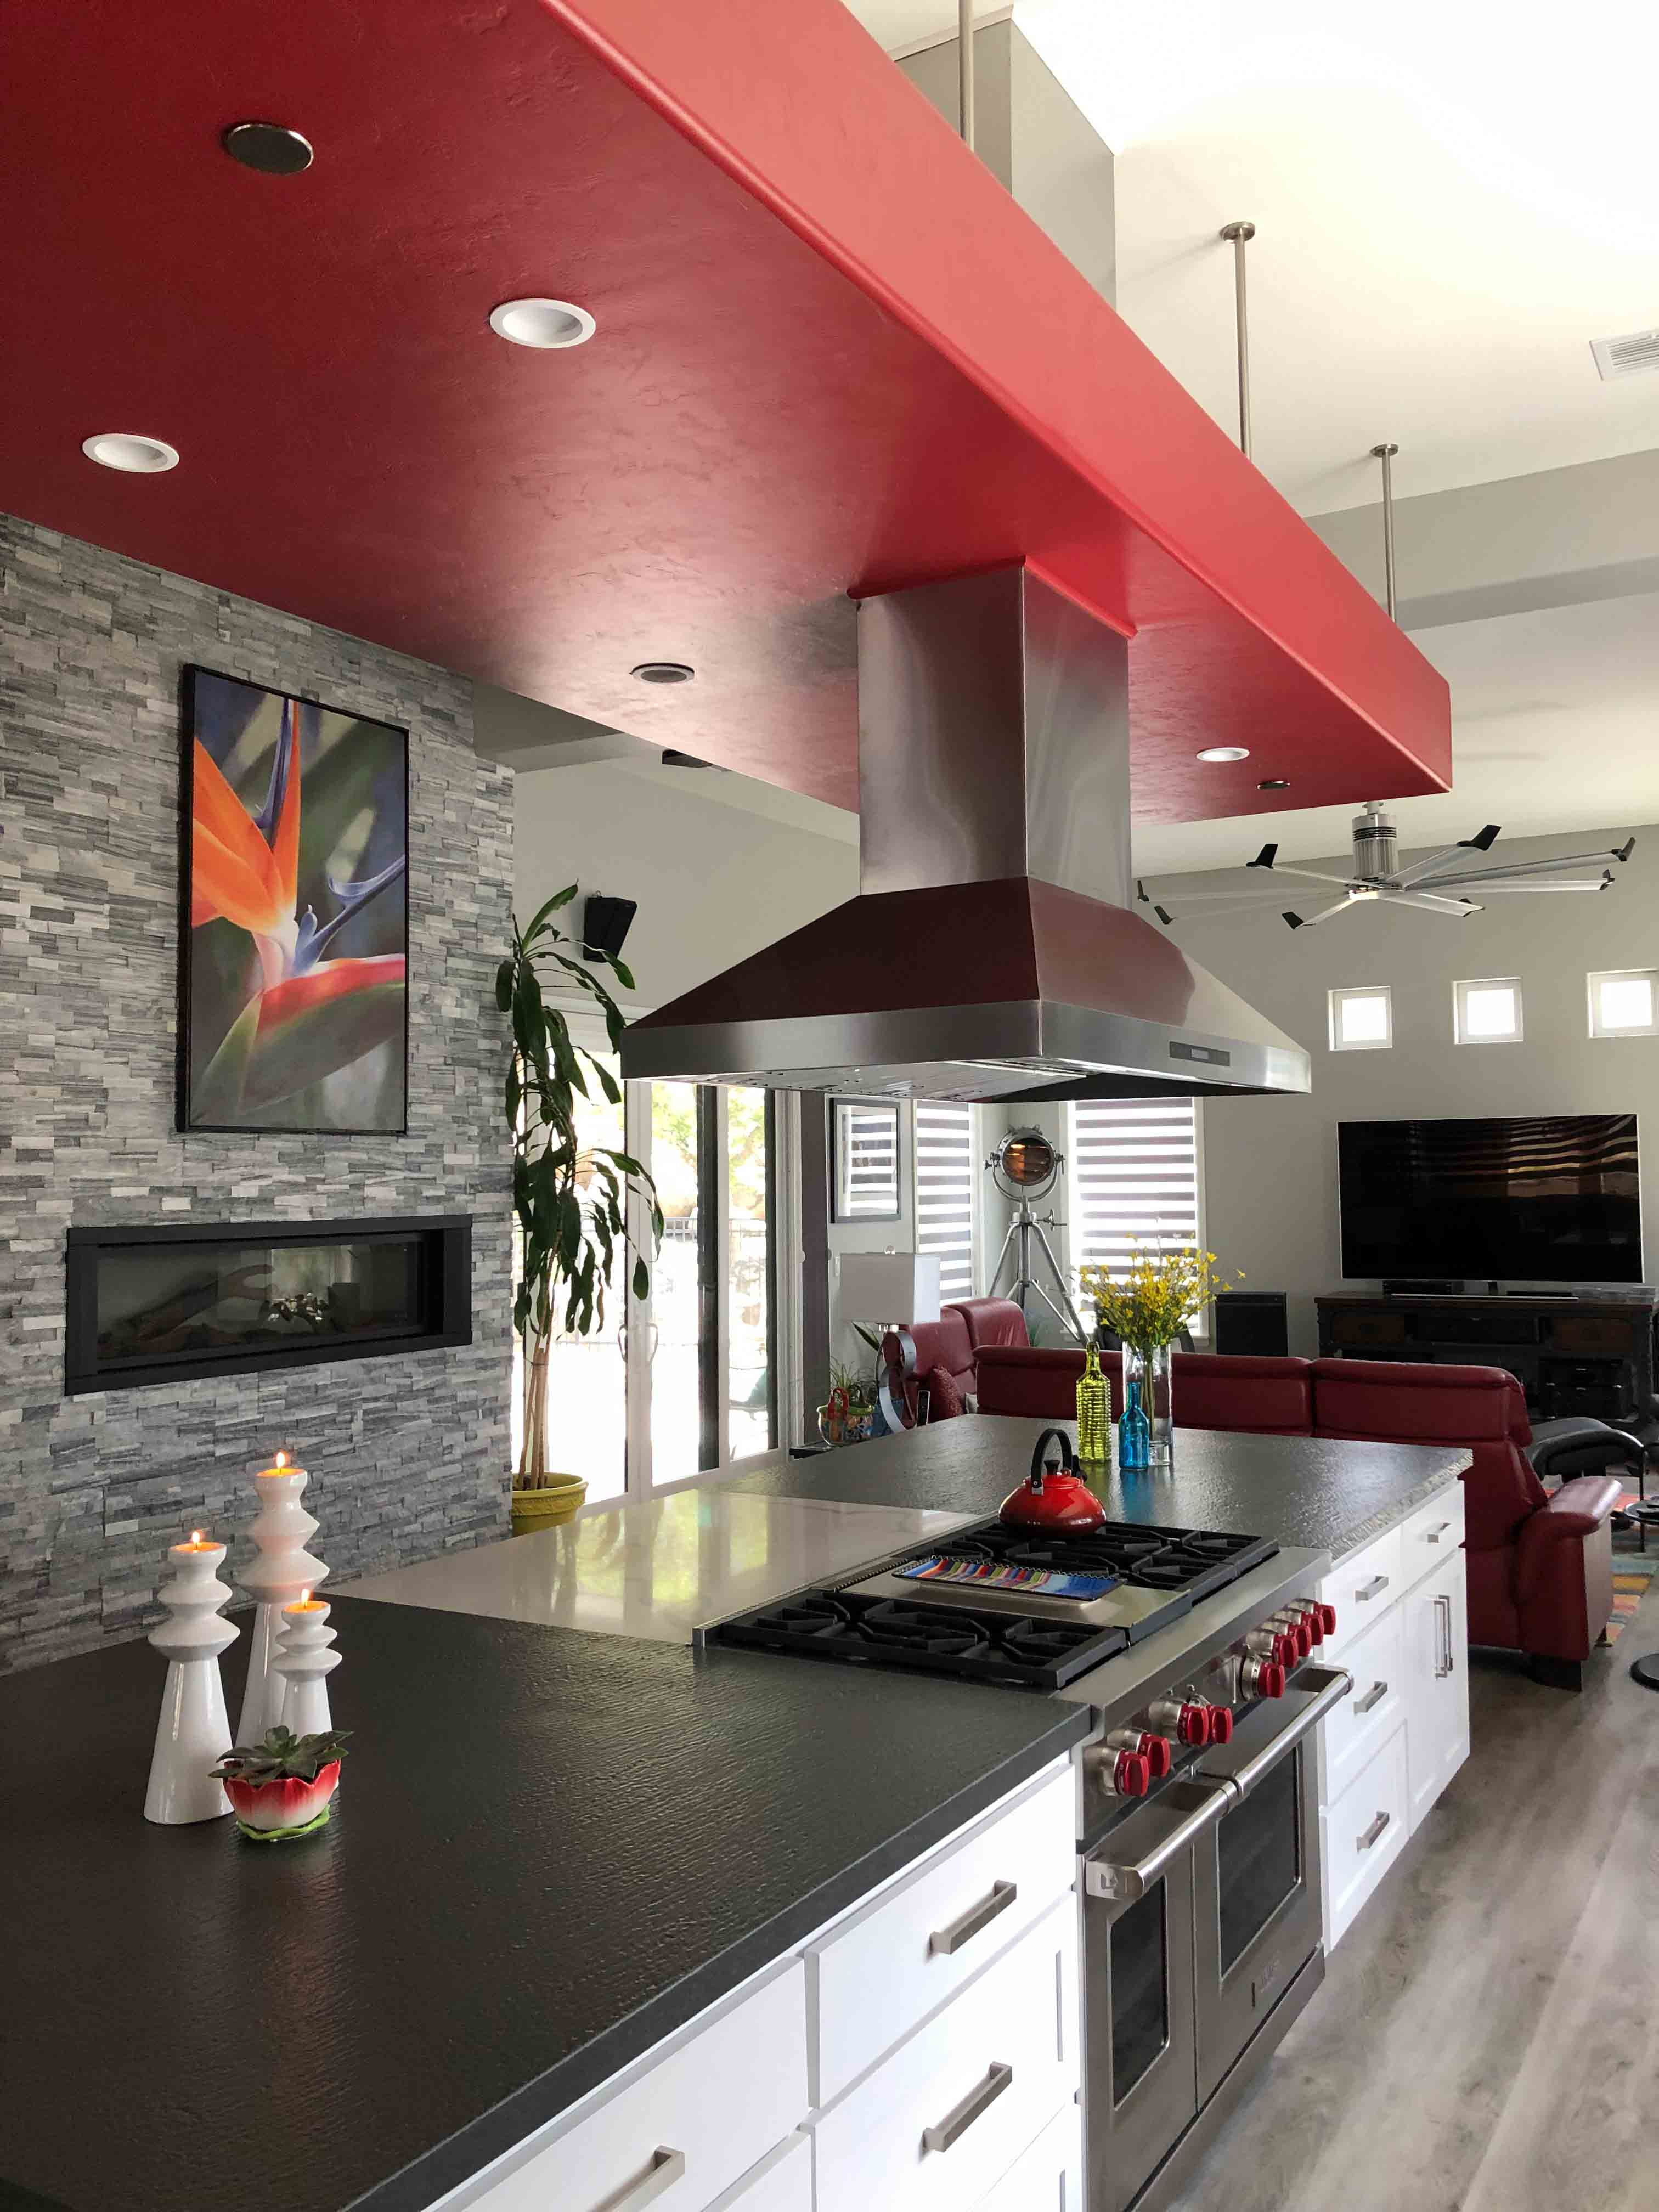 How To Install A Vent Hood An Ultimate Guide Proline Blog